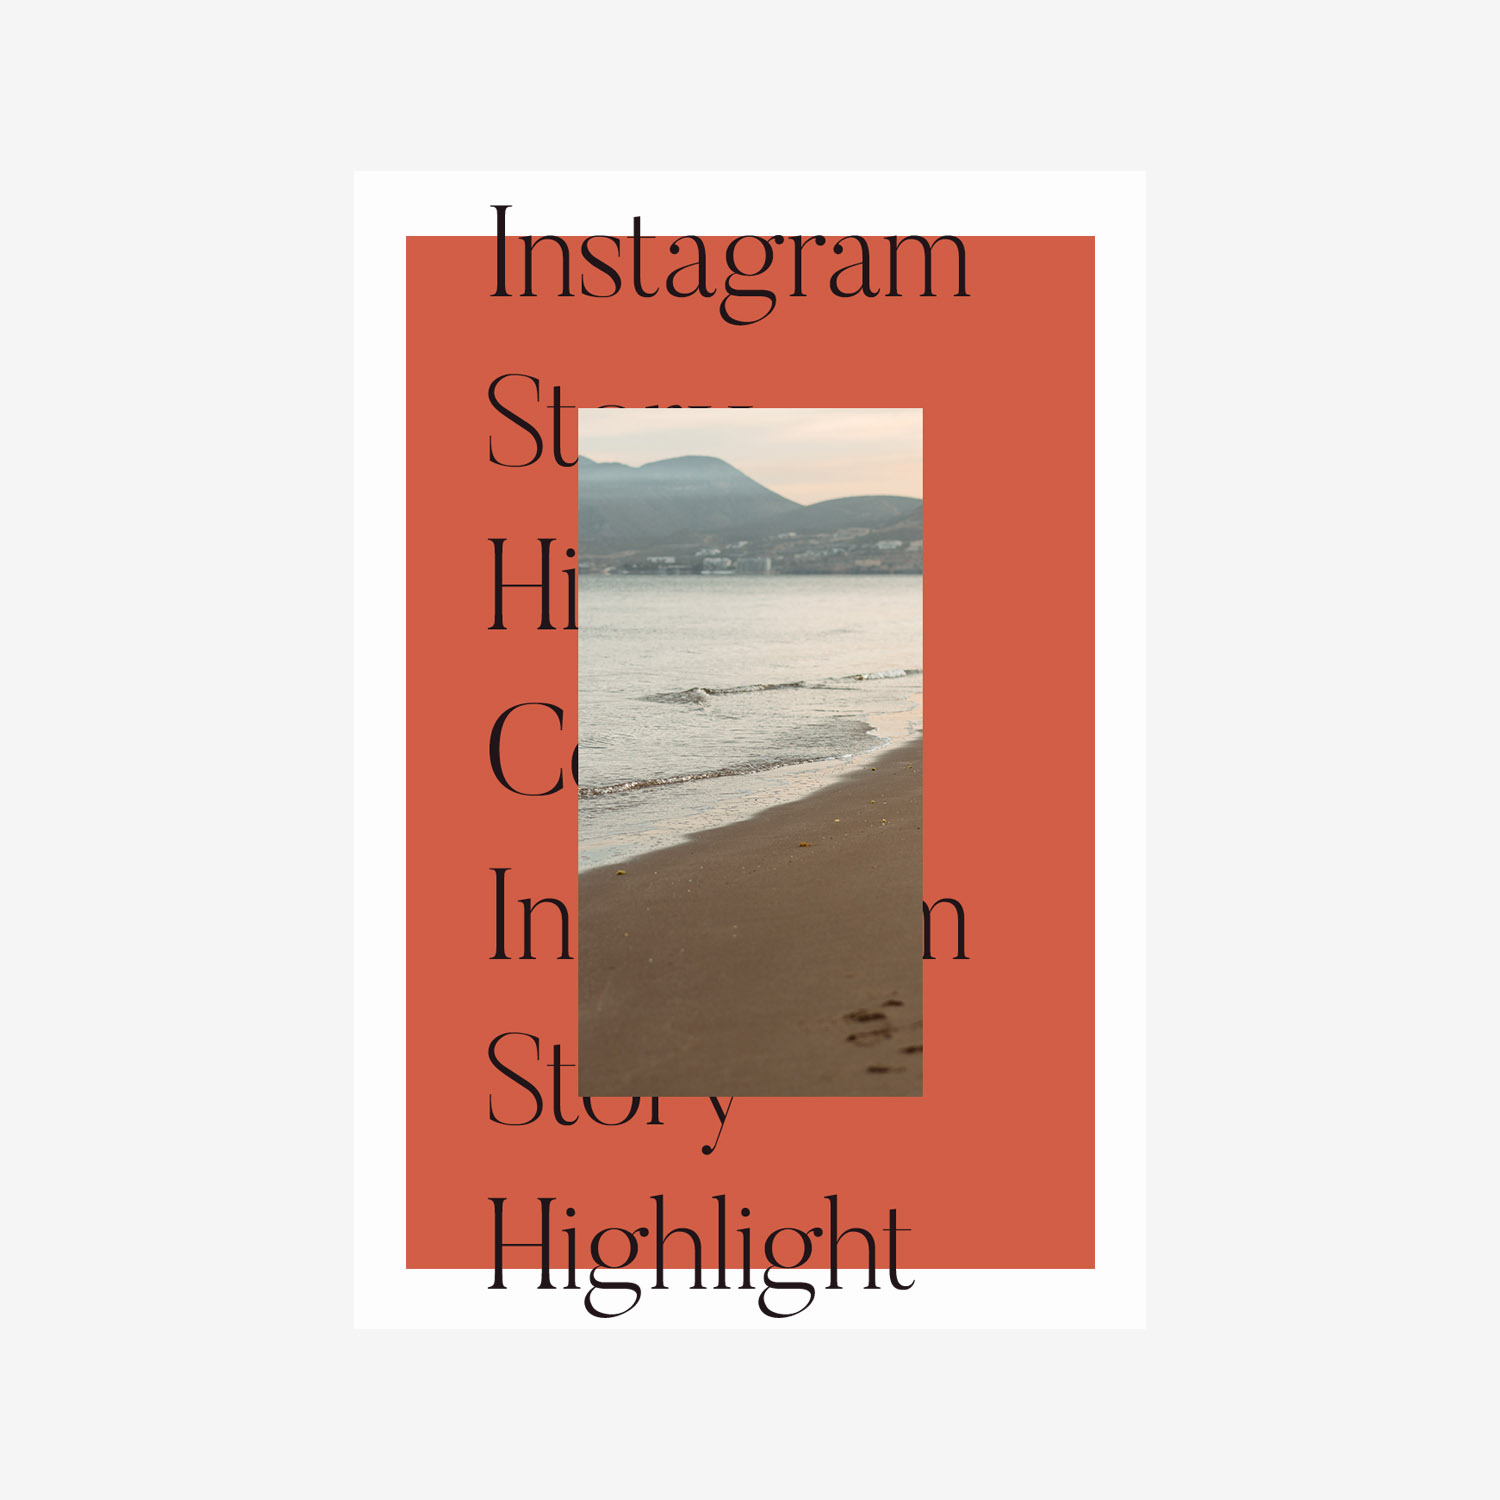 ig story covers.jpg